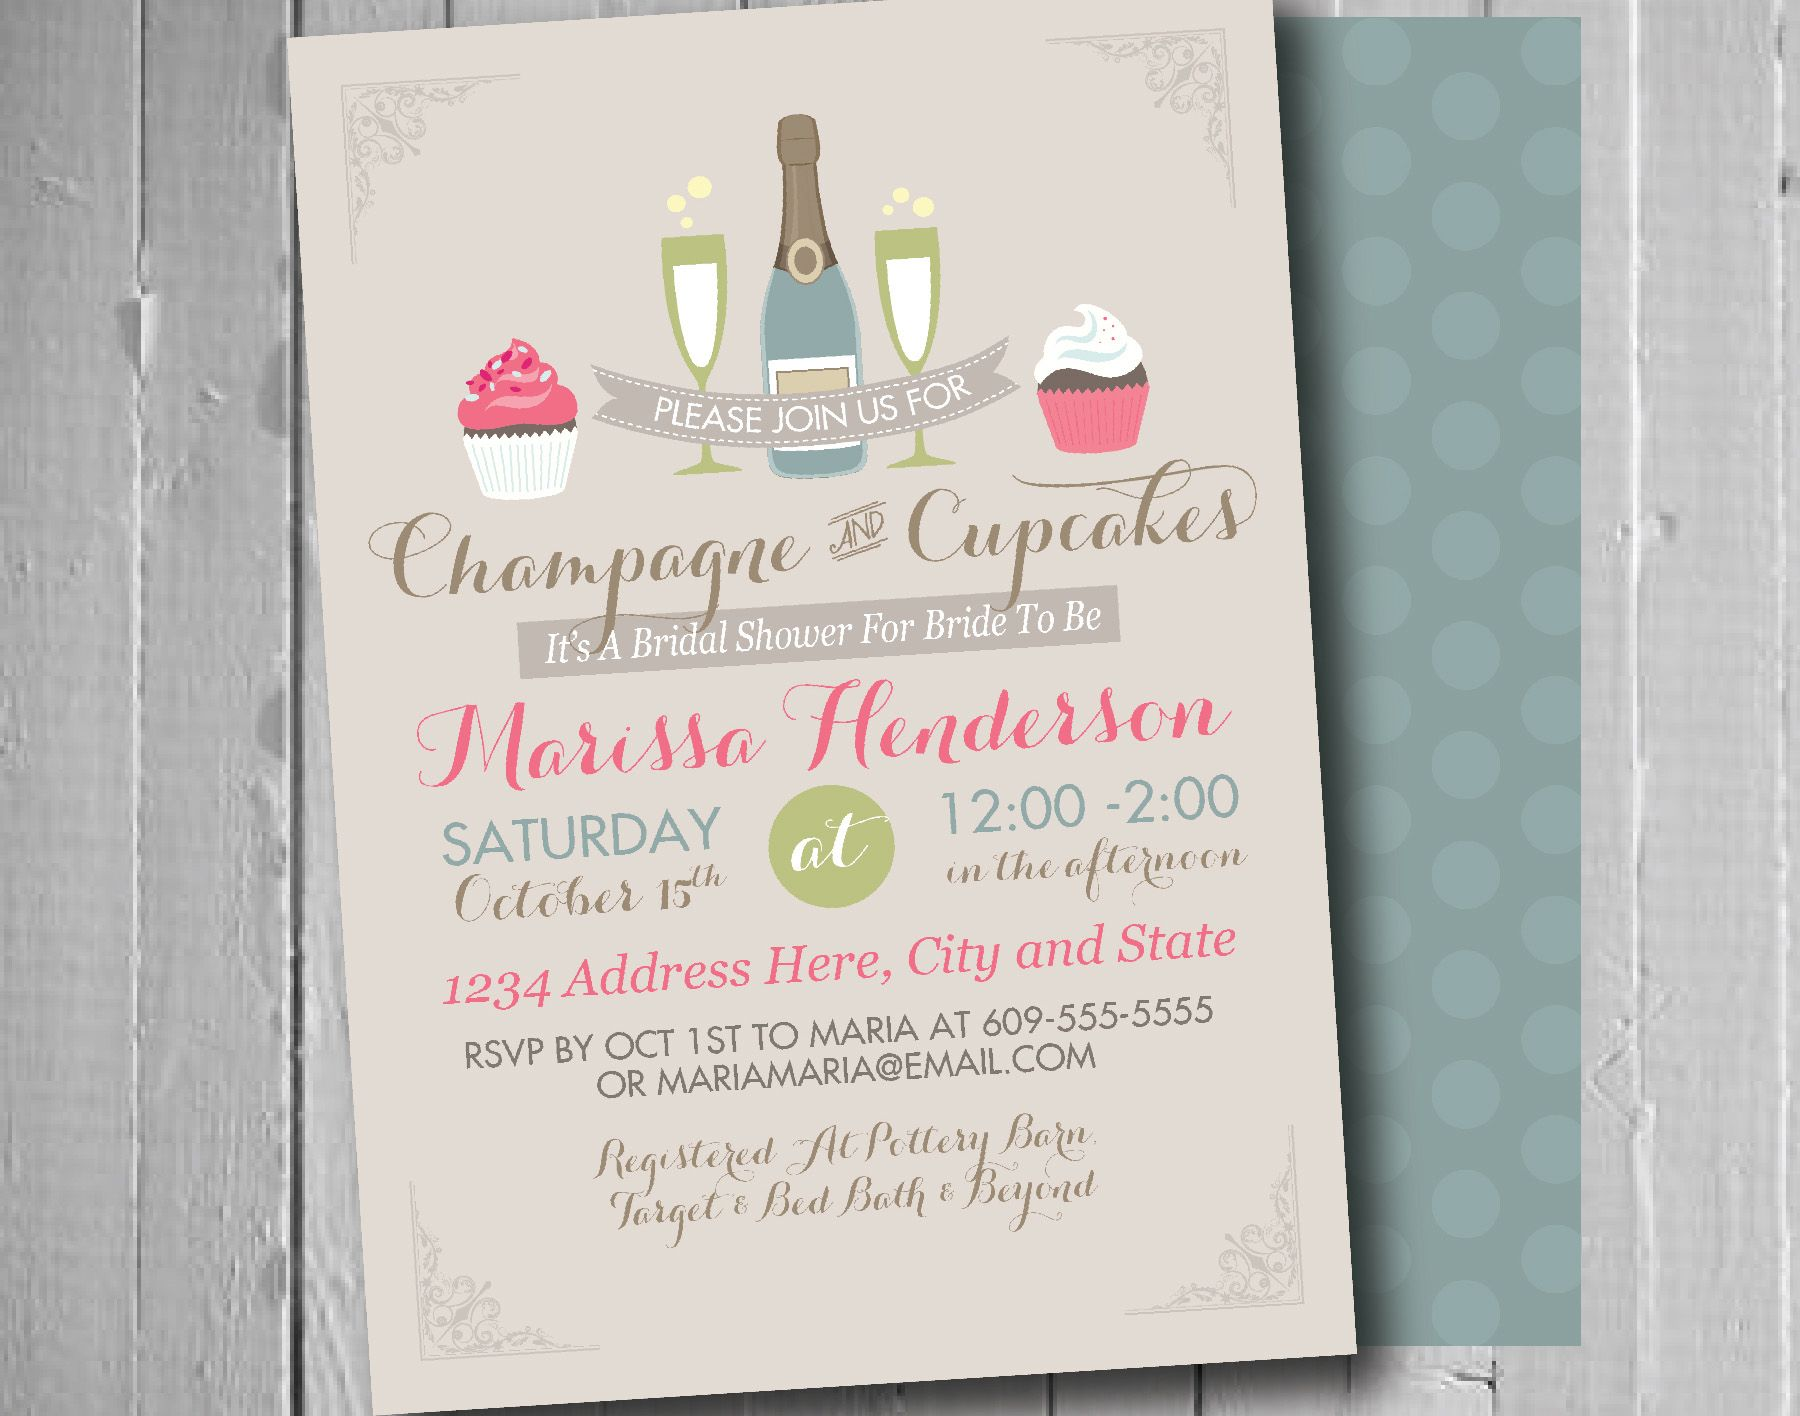 Champagne and cupcakes bridal shower invitation shabby chic bridal champagne and cupcakes bridal shower invitation shabby chic bridal shower cupcakes and cocktails wedding shower mimosa shower 34 filmwisefo Choice Image